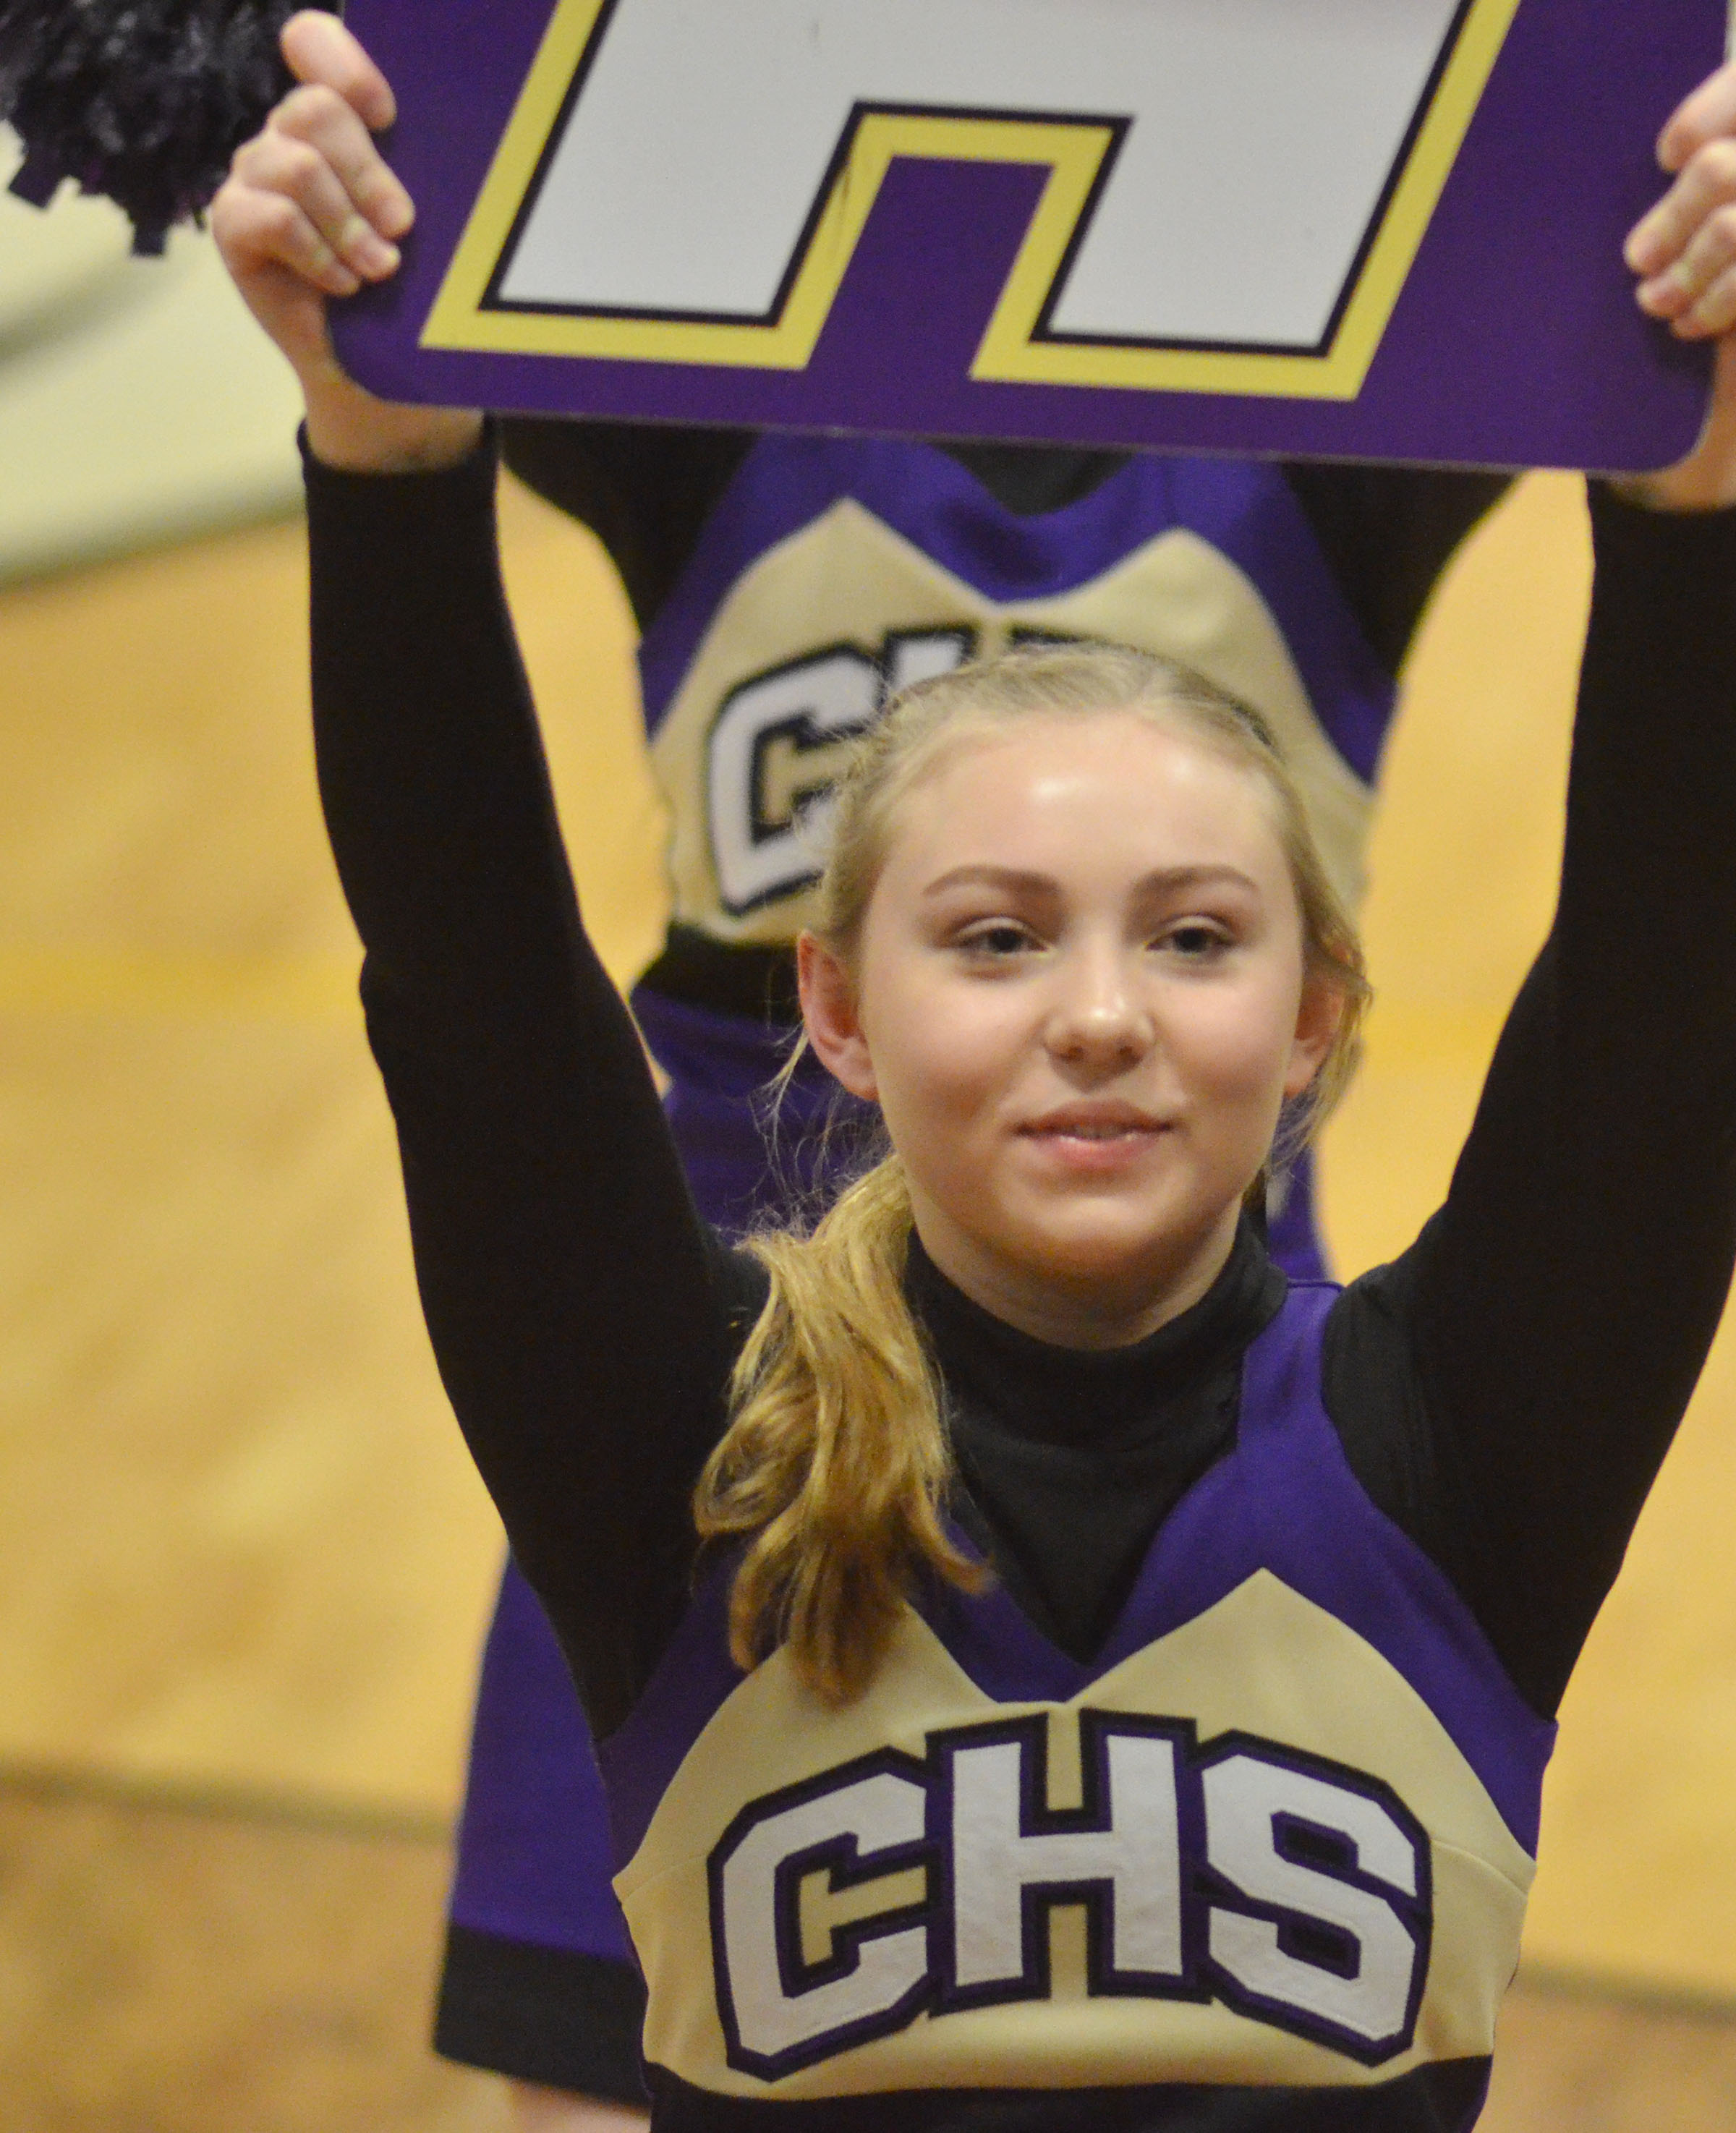 CHS freshman Bailey Smith cheers for the Eagles.